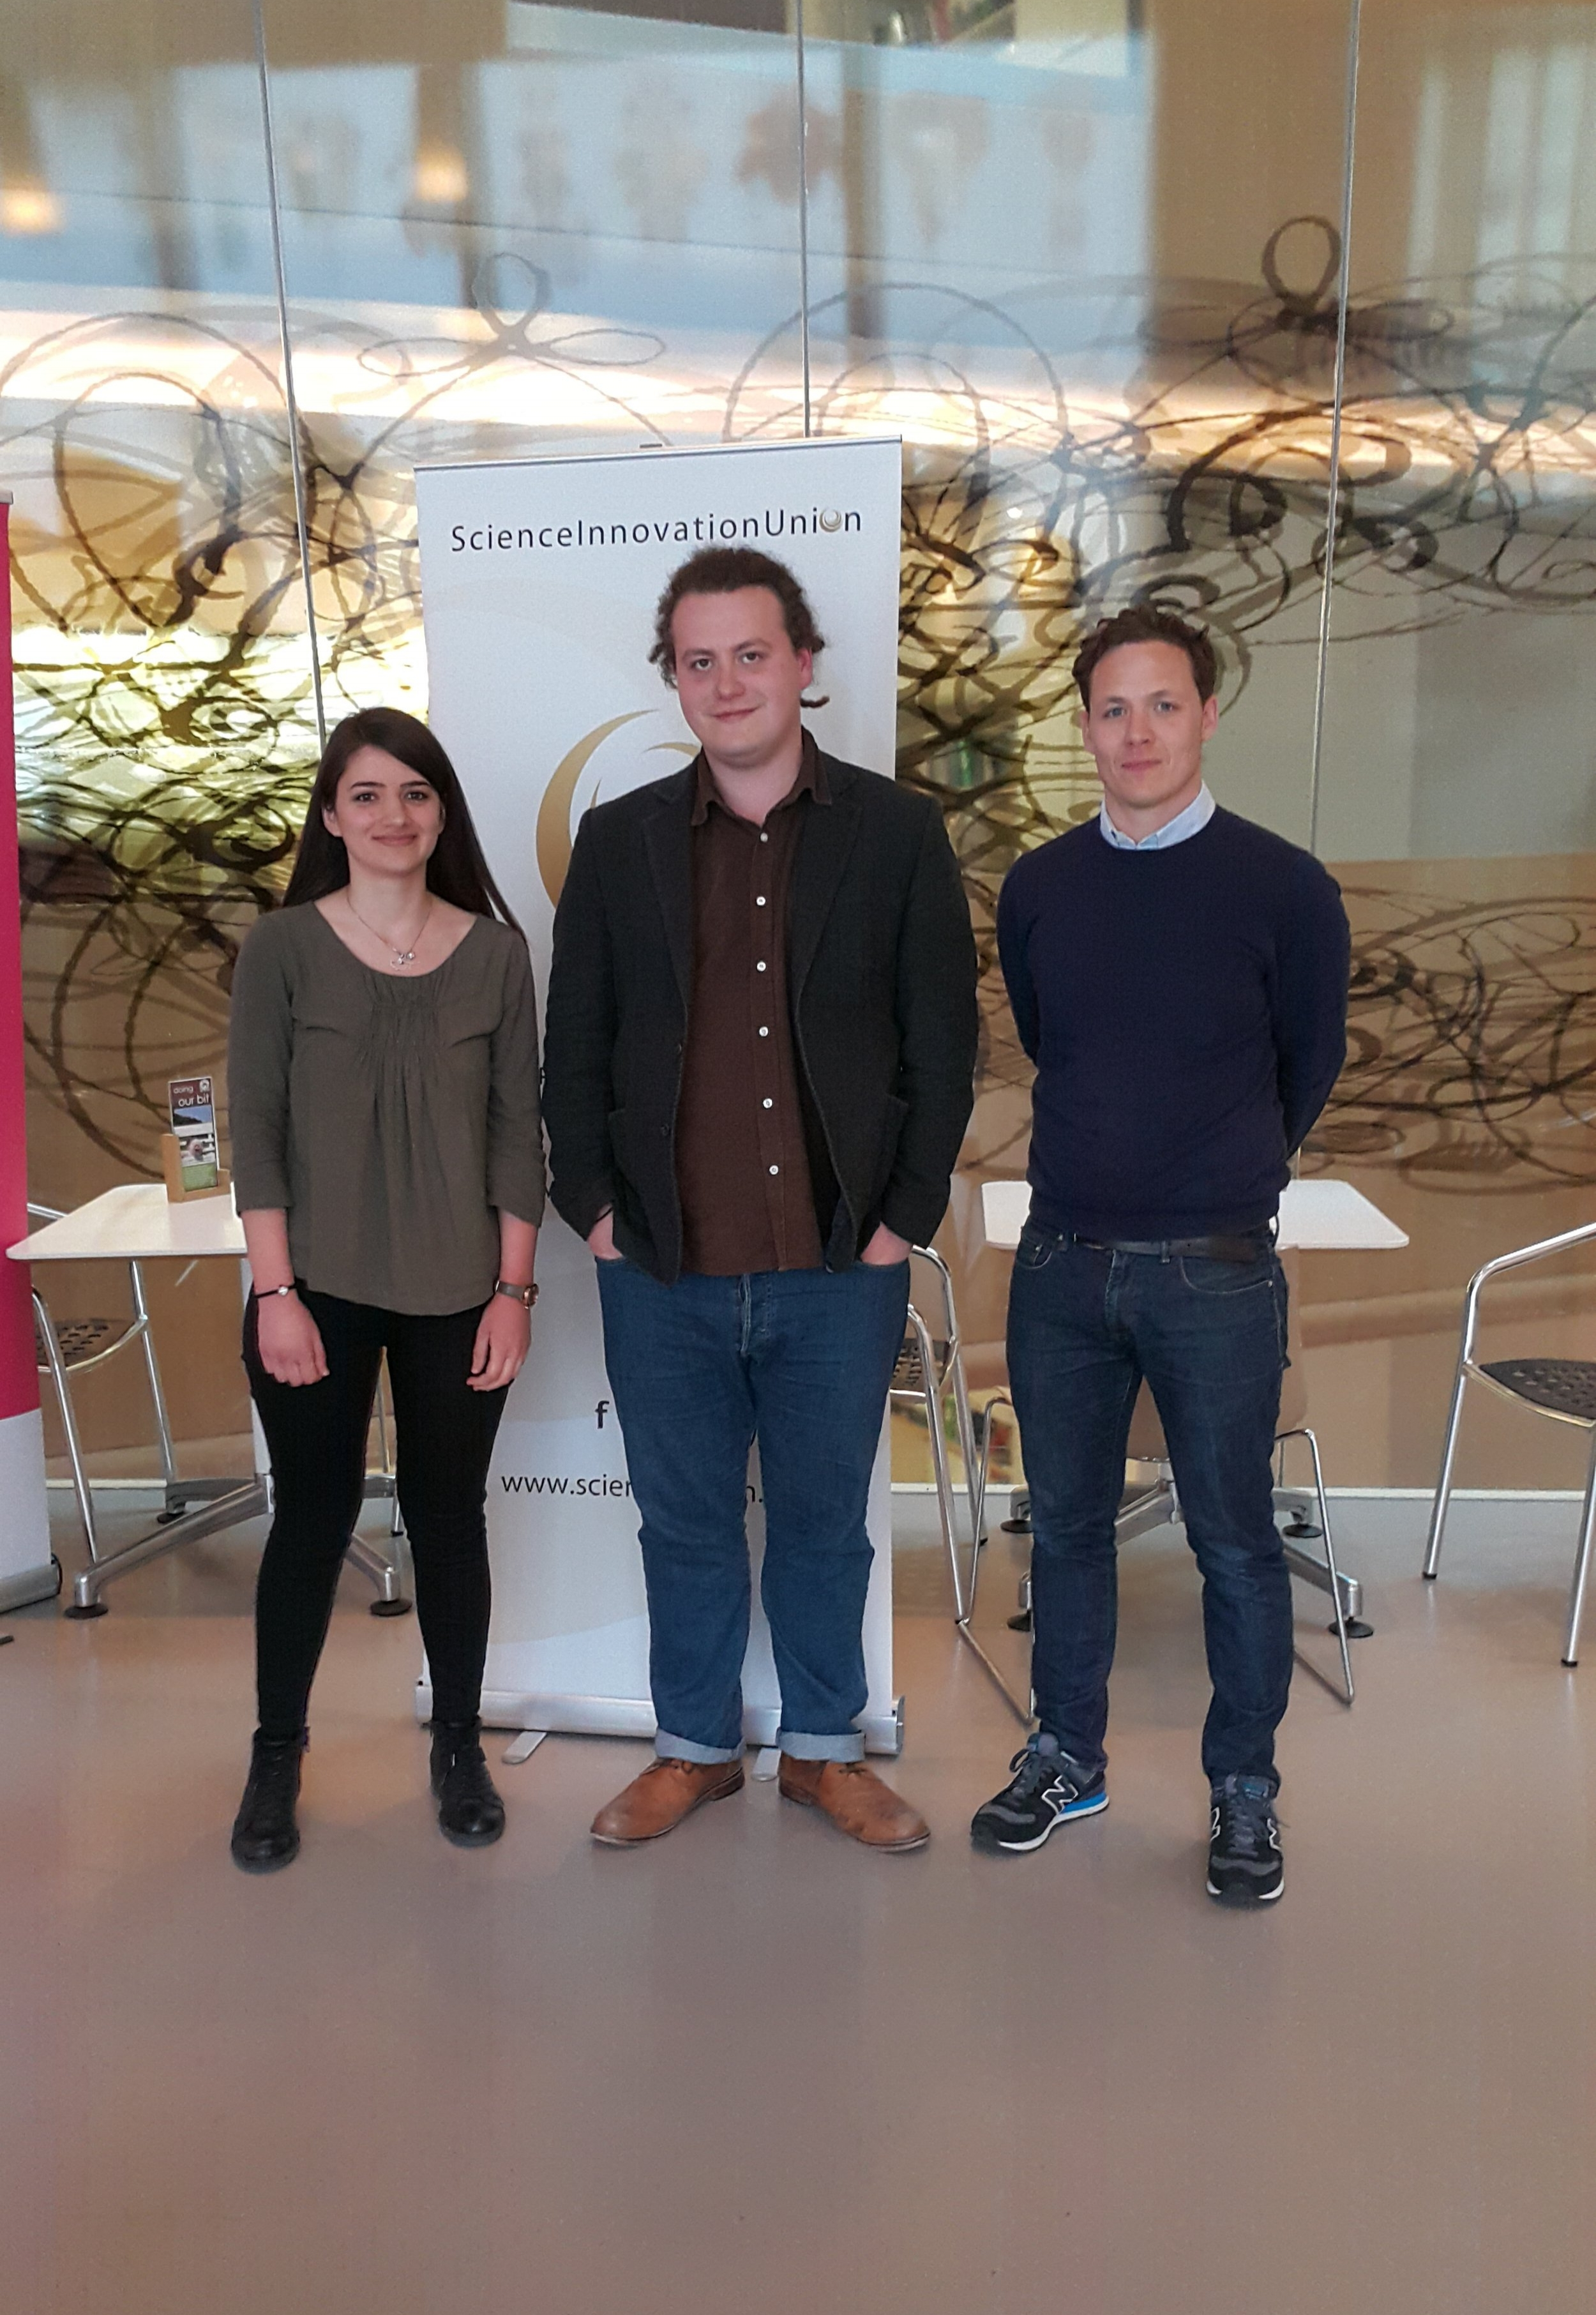 Our writing competition winners Idil Cazimoglu (left) and George Busby (right) with Naturejobs editor Jack Leeming